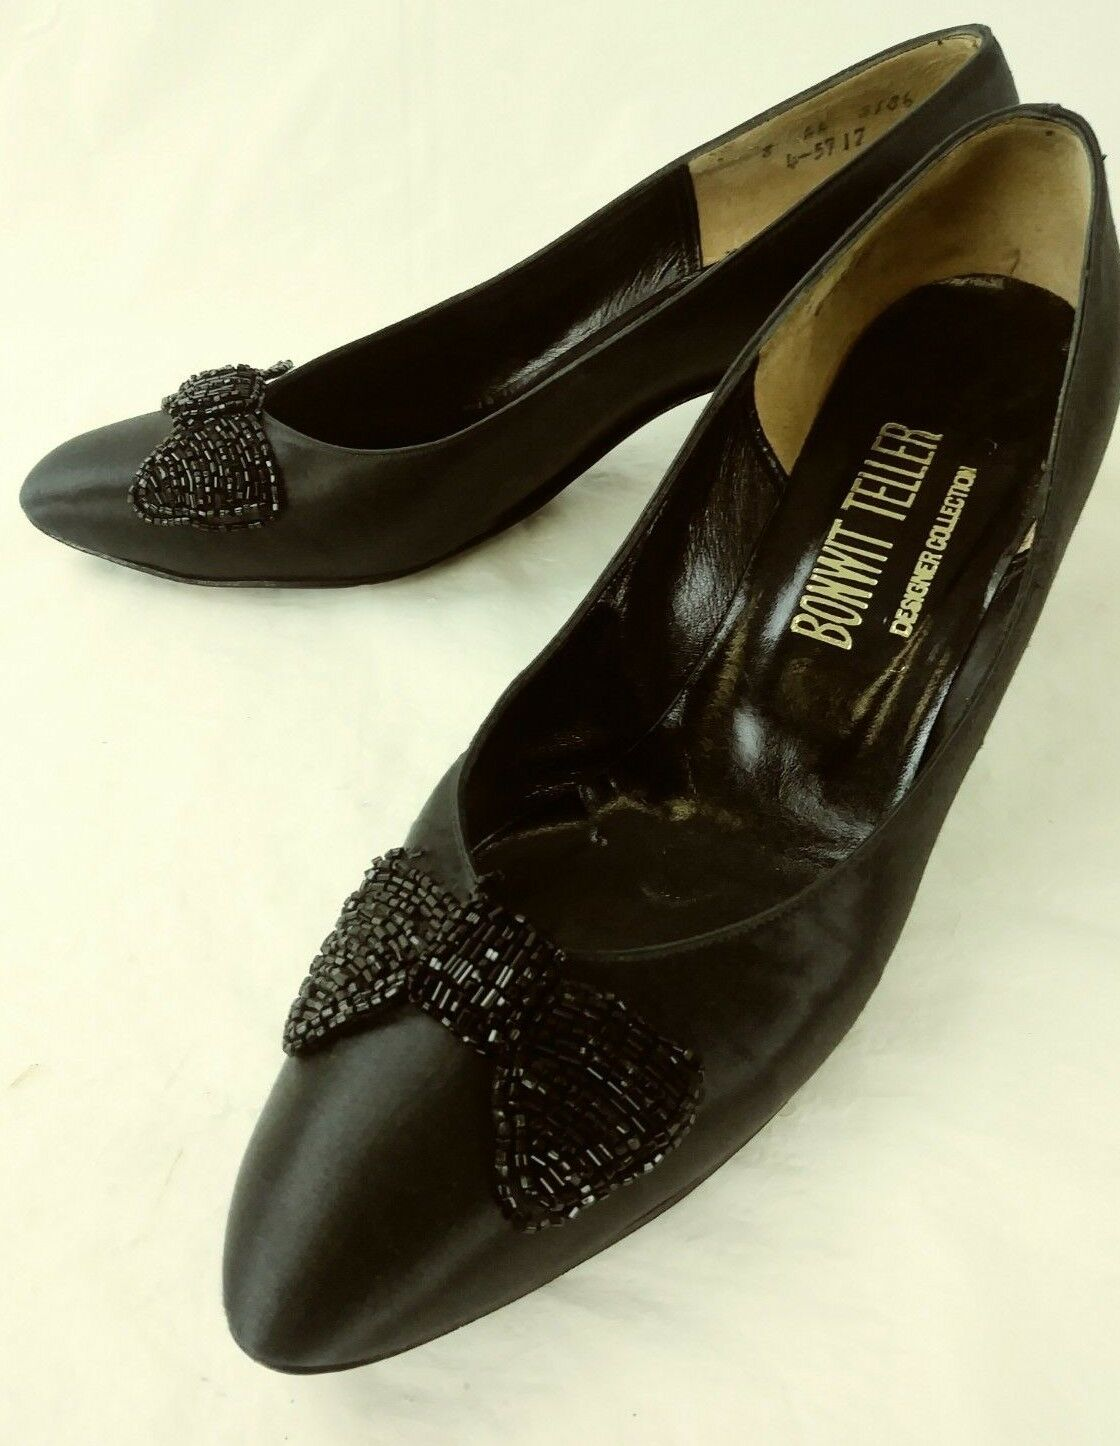 Bonwit Teller Wos Heels Designer US 8 AA Black Satin Beaded Bow Dress shoes 5445